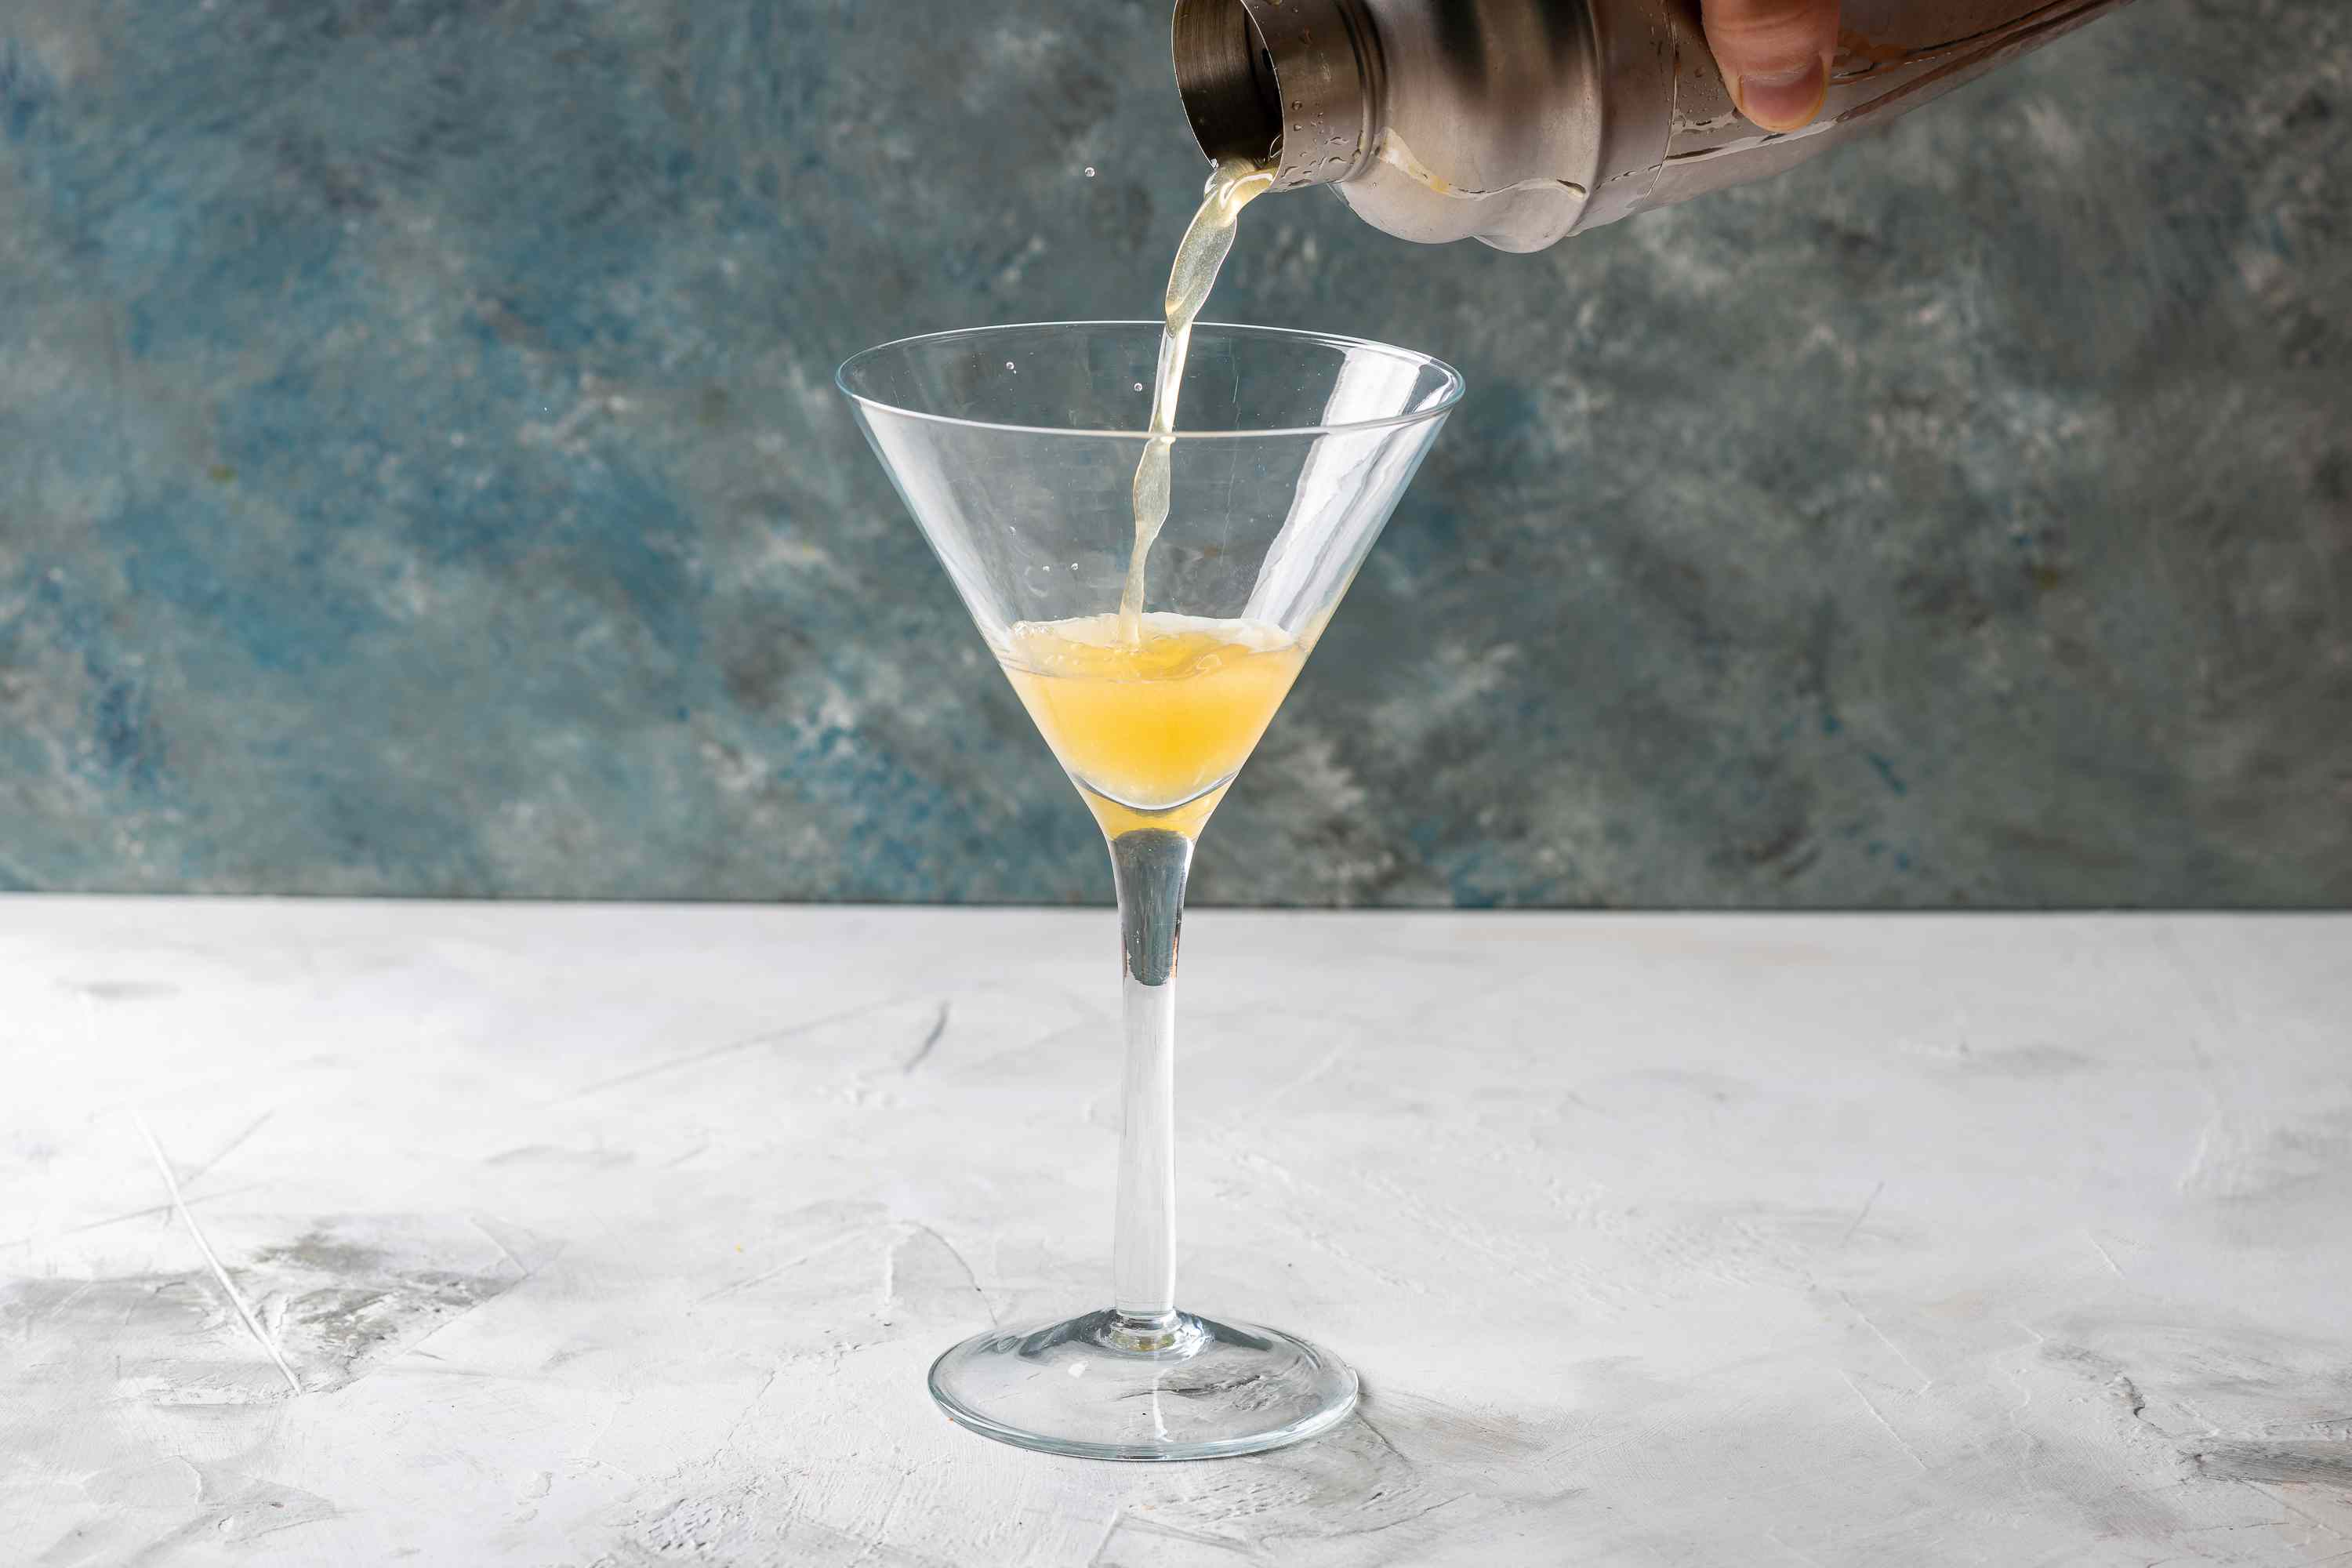 Strain the cocktail into a chilled cocktail glass